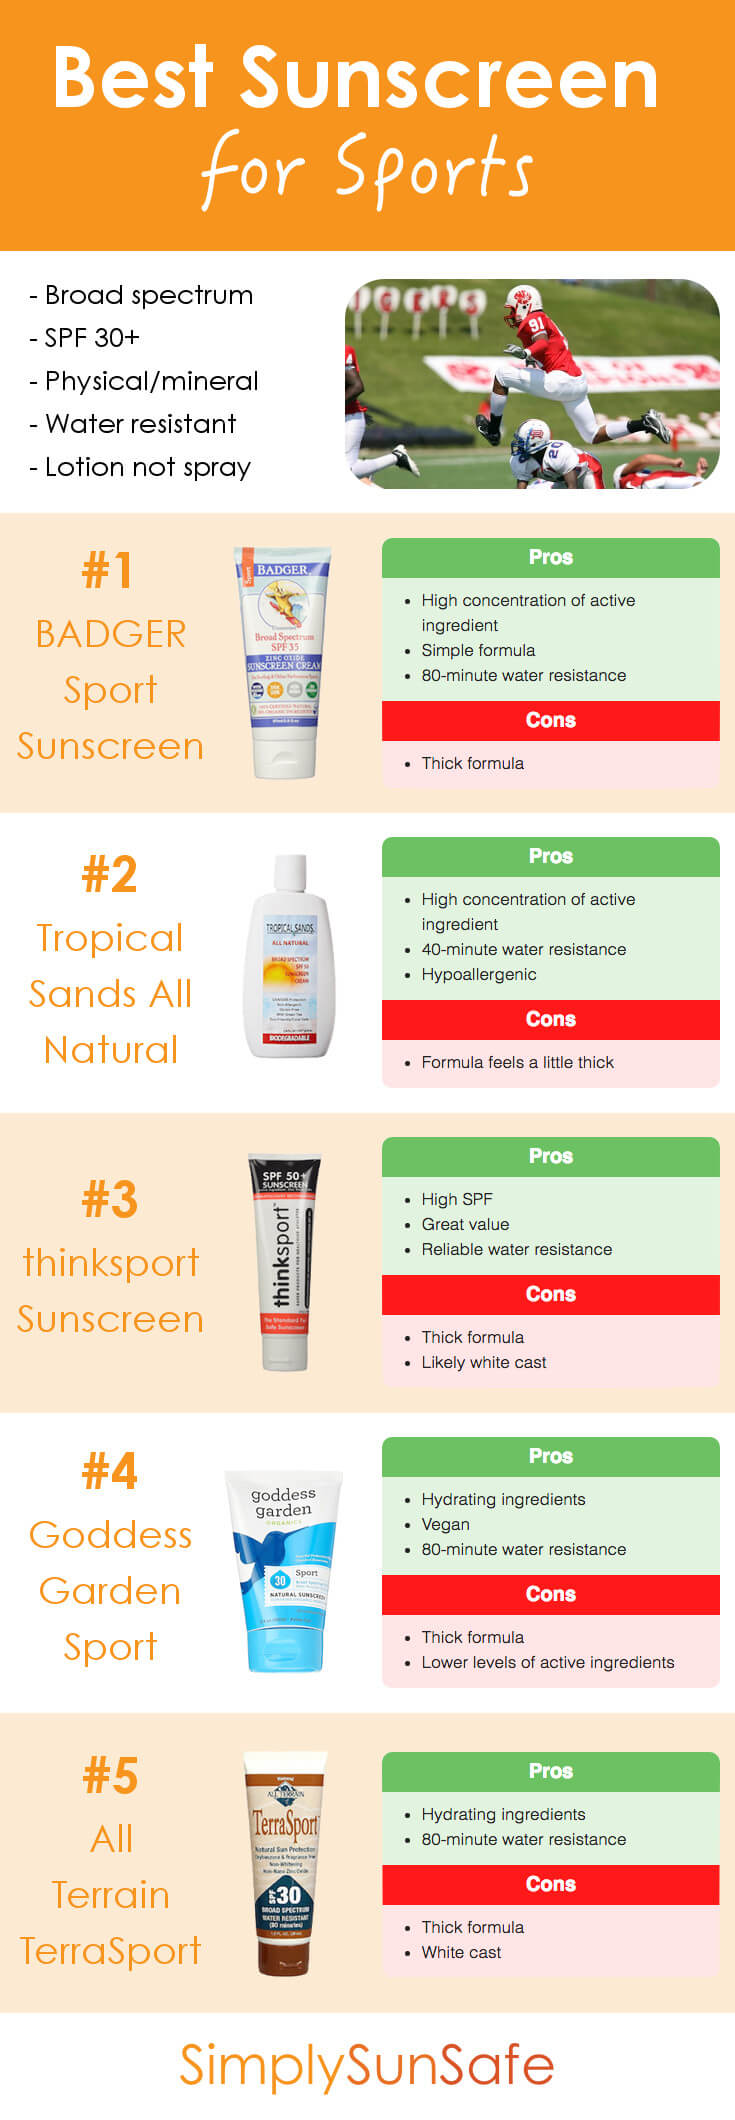 Best Sunscreen for Sports Pinterest